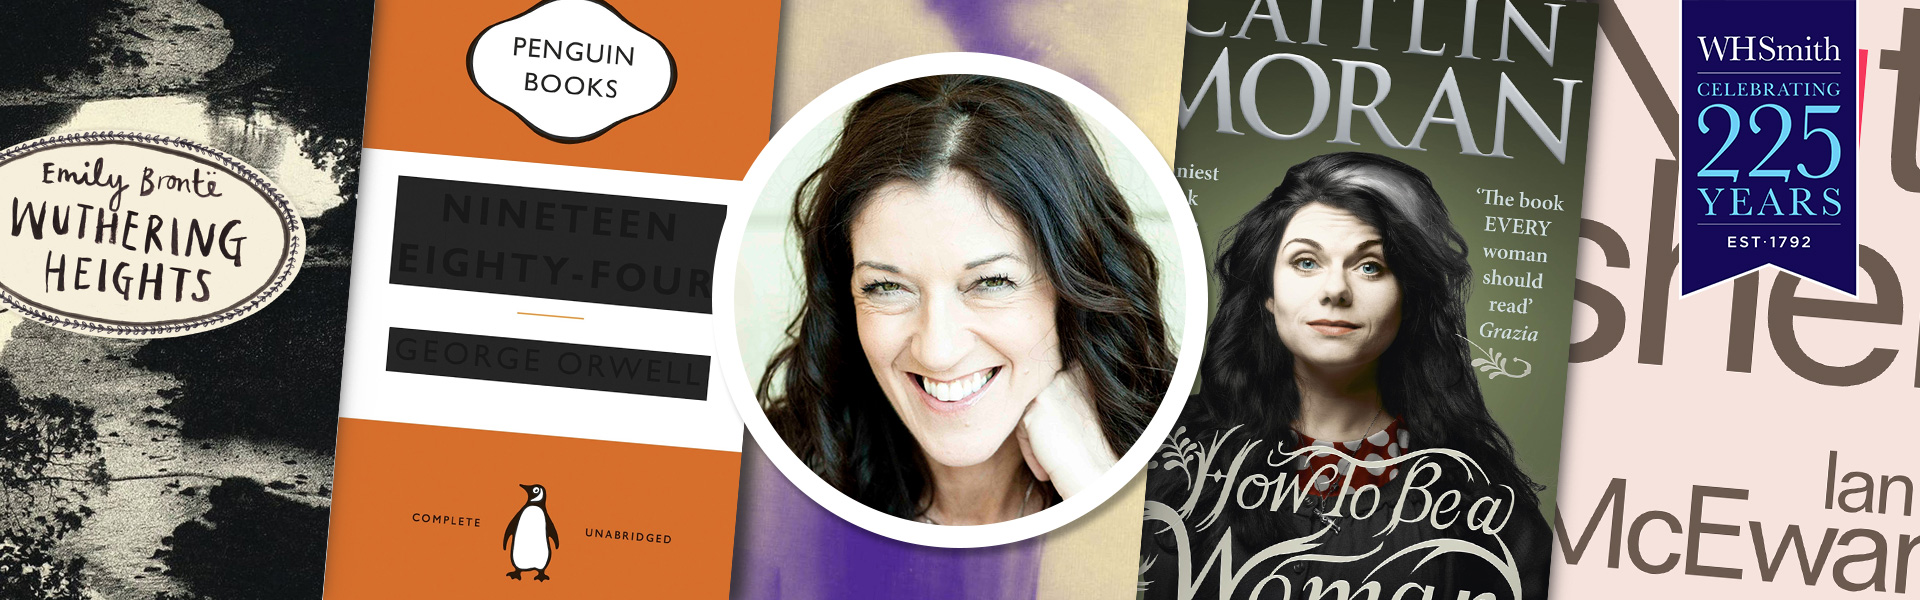 Victoria Hislop: Top 5 Books of the Past 225 Years